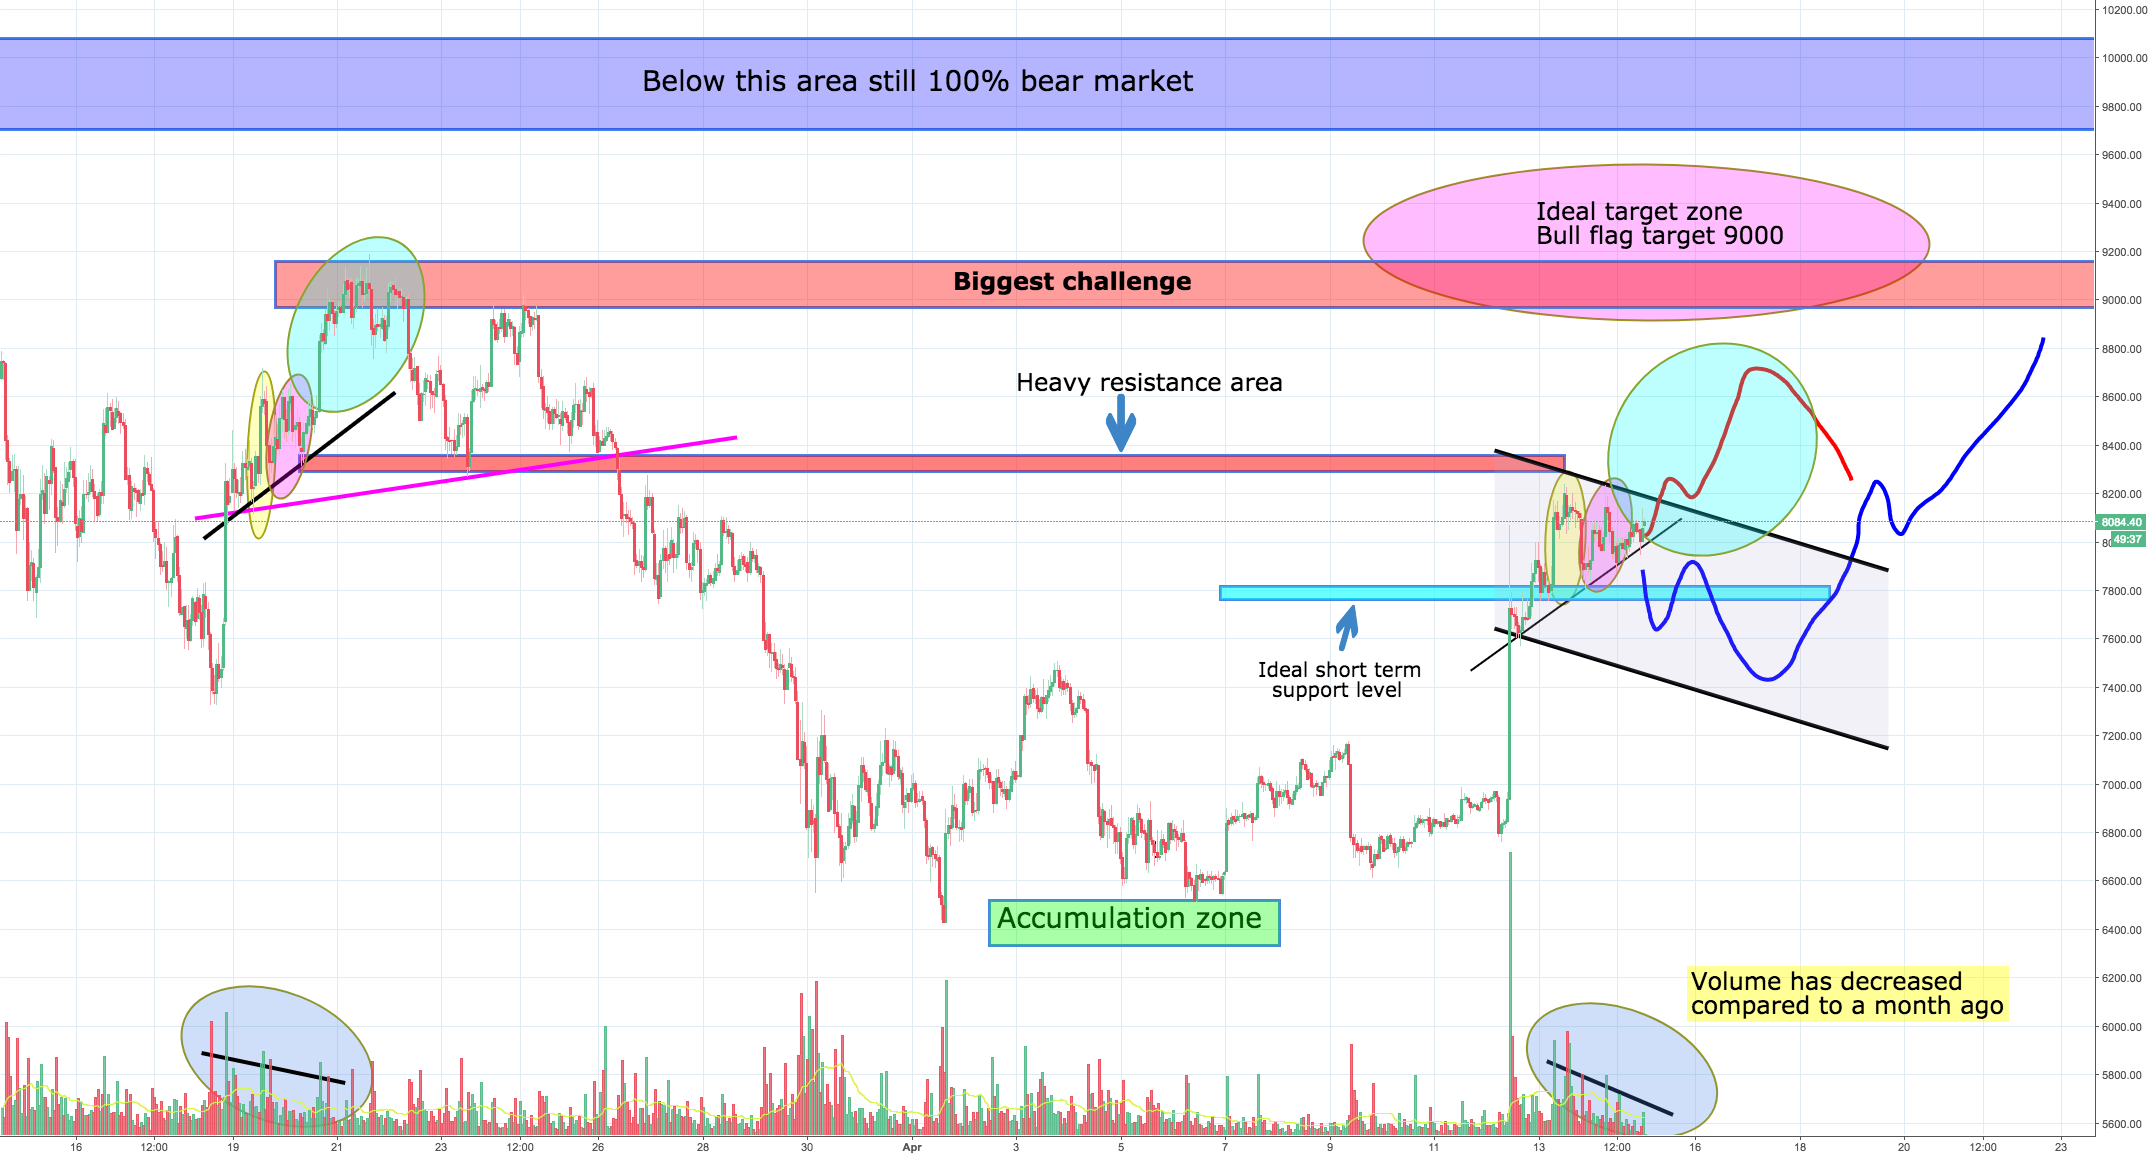 Bitcoins big bears shakeout, repeating the last big rally?